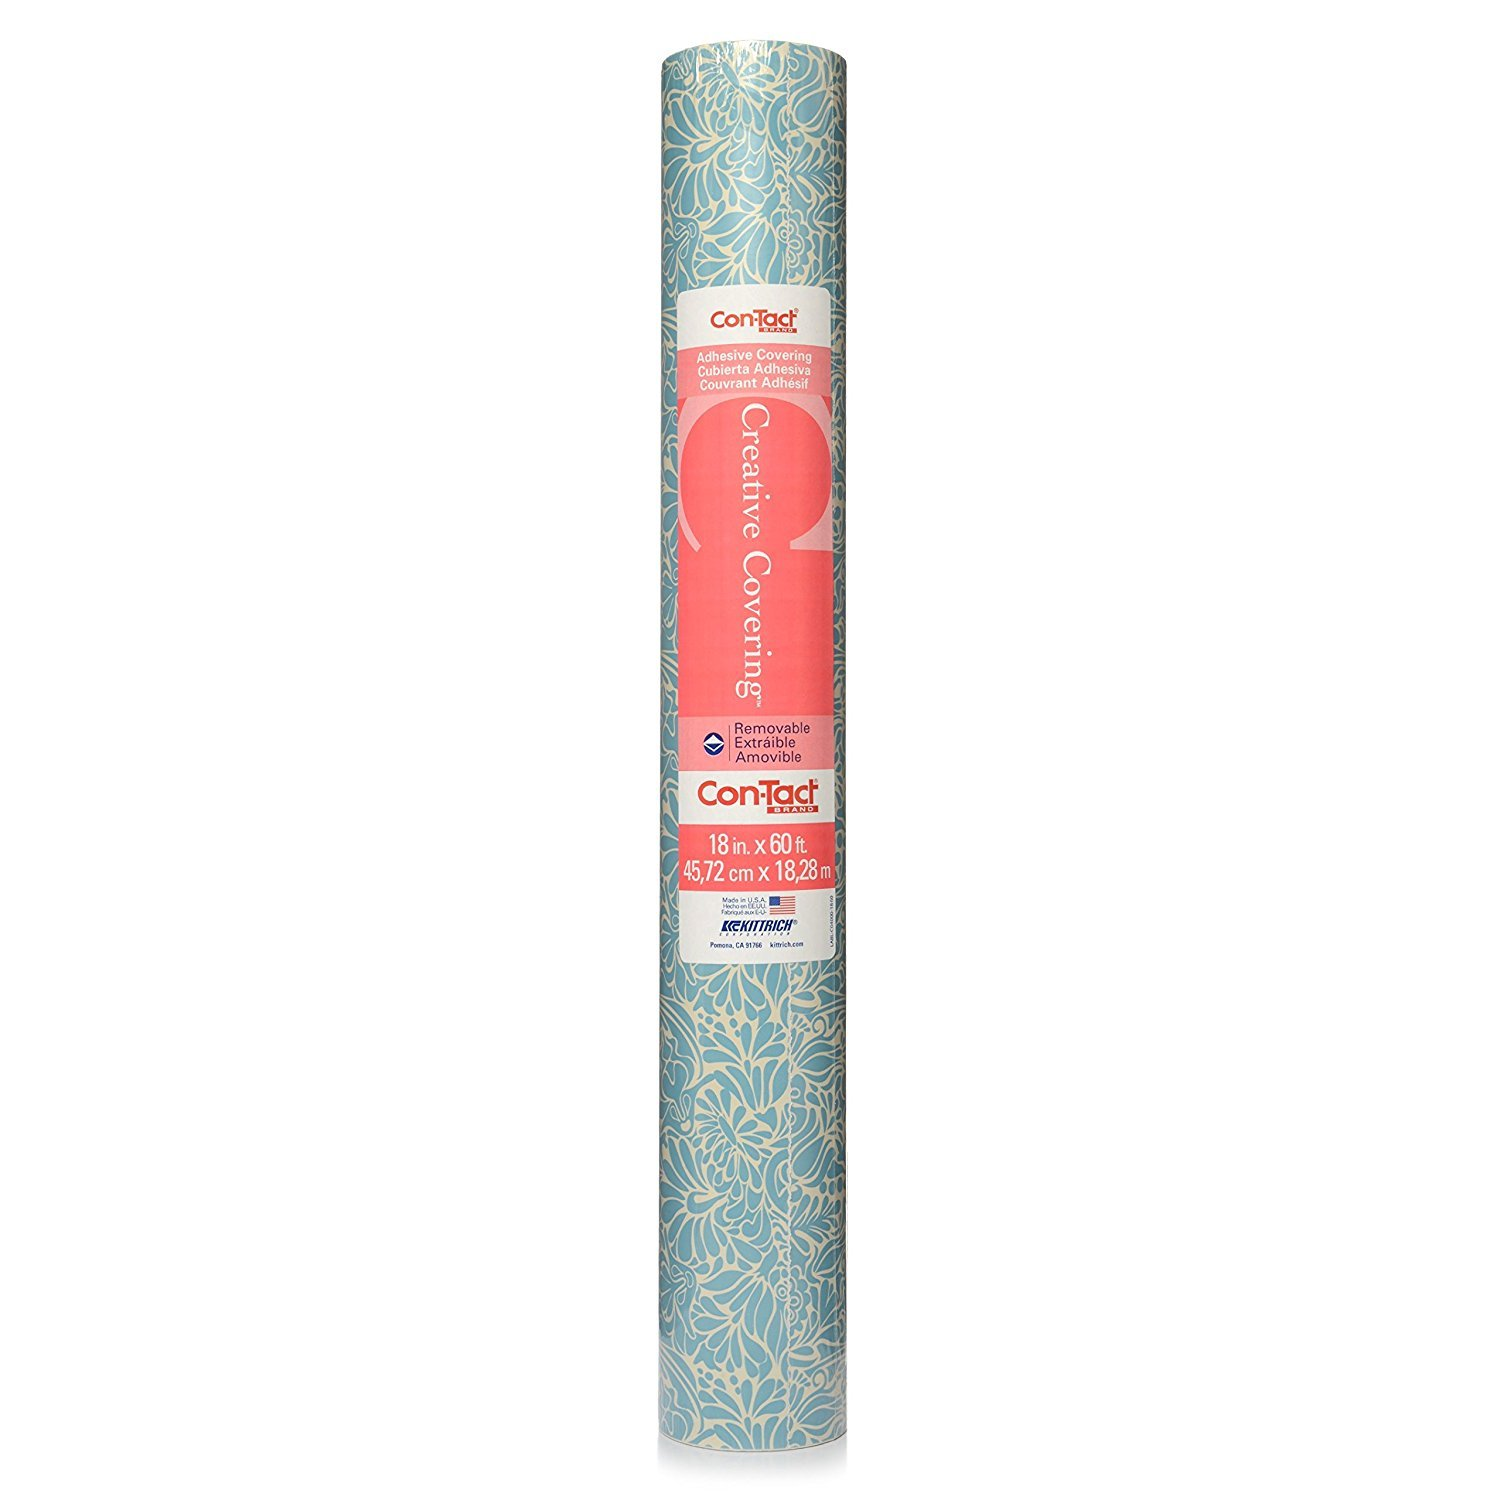 """Con-tact Brand Creative Covering Adhesive Vinyl For Lining Shelves And  Drawers, Decorating And Craft Projects, 18"""" X 60', Batik Blue"""